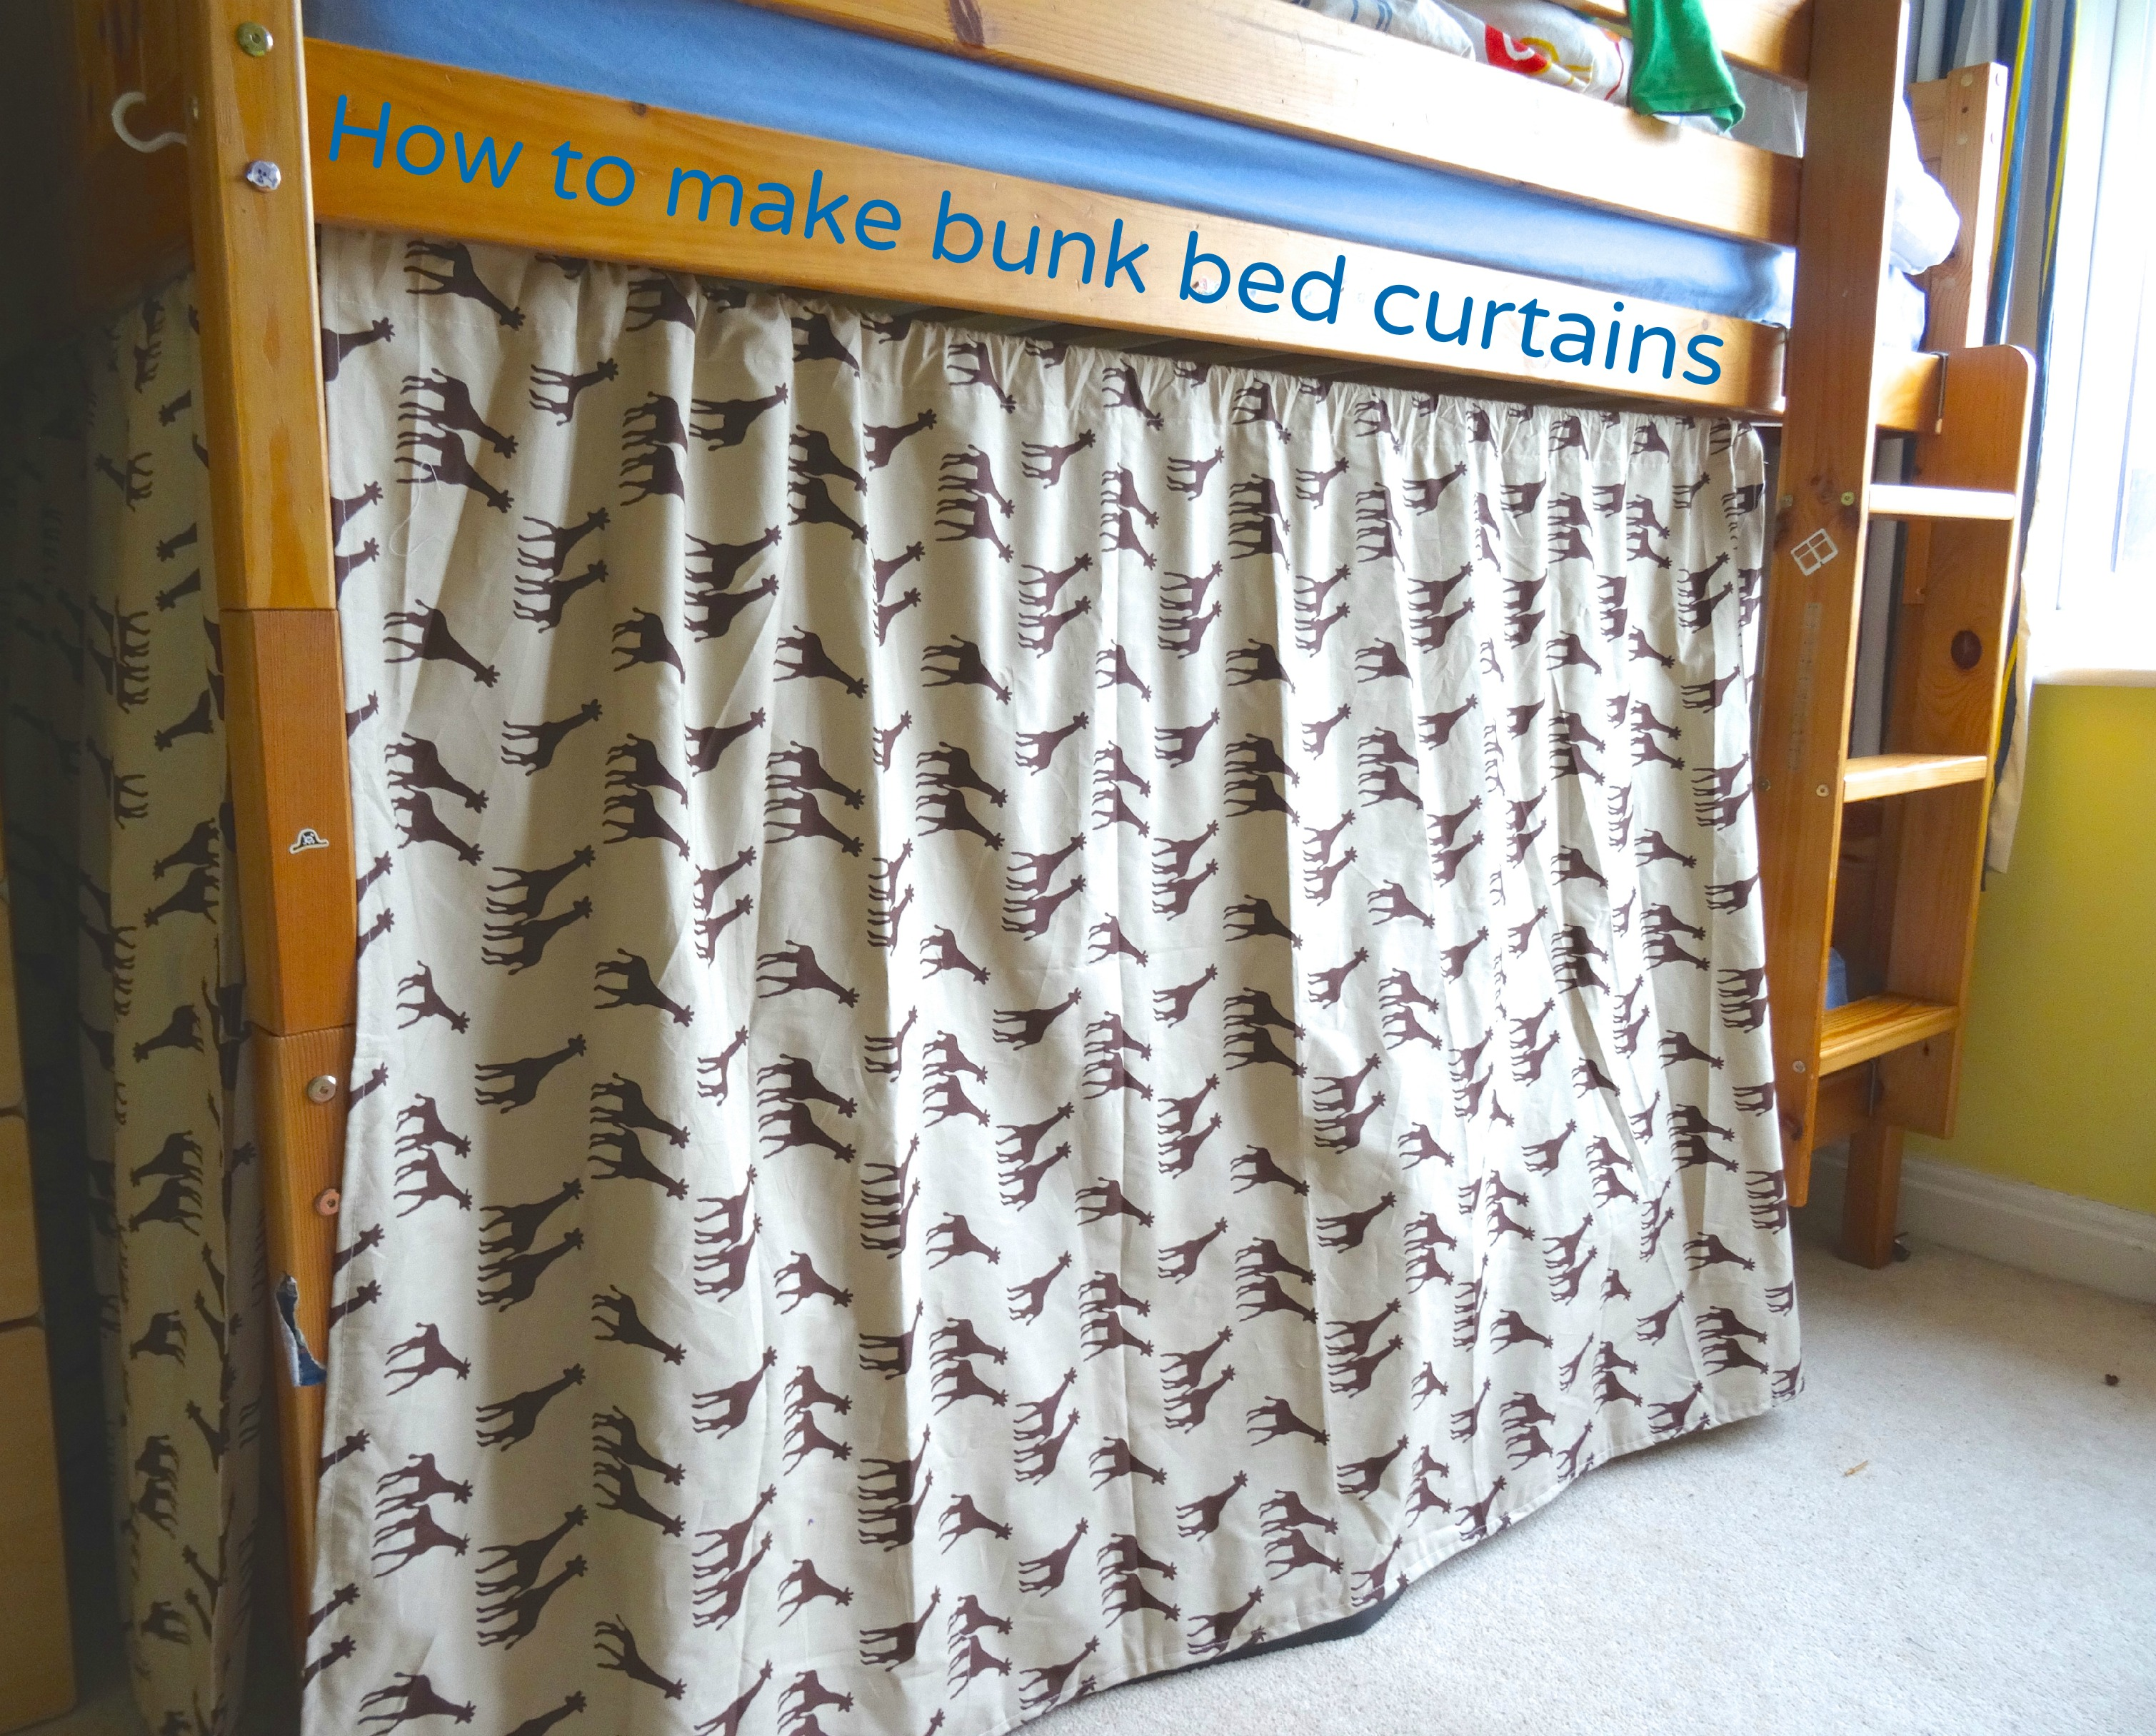 Bunk bed curtains - Bunk Bed Curtains 24